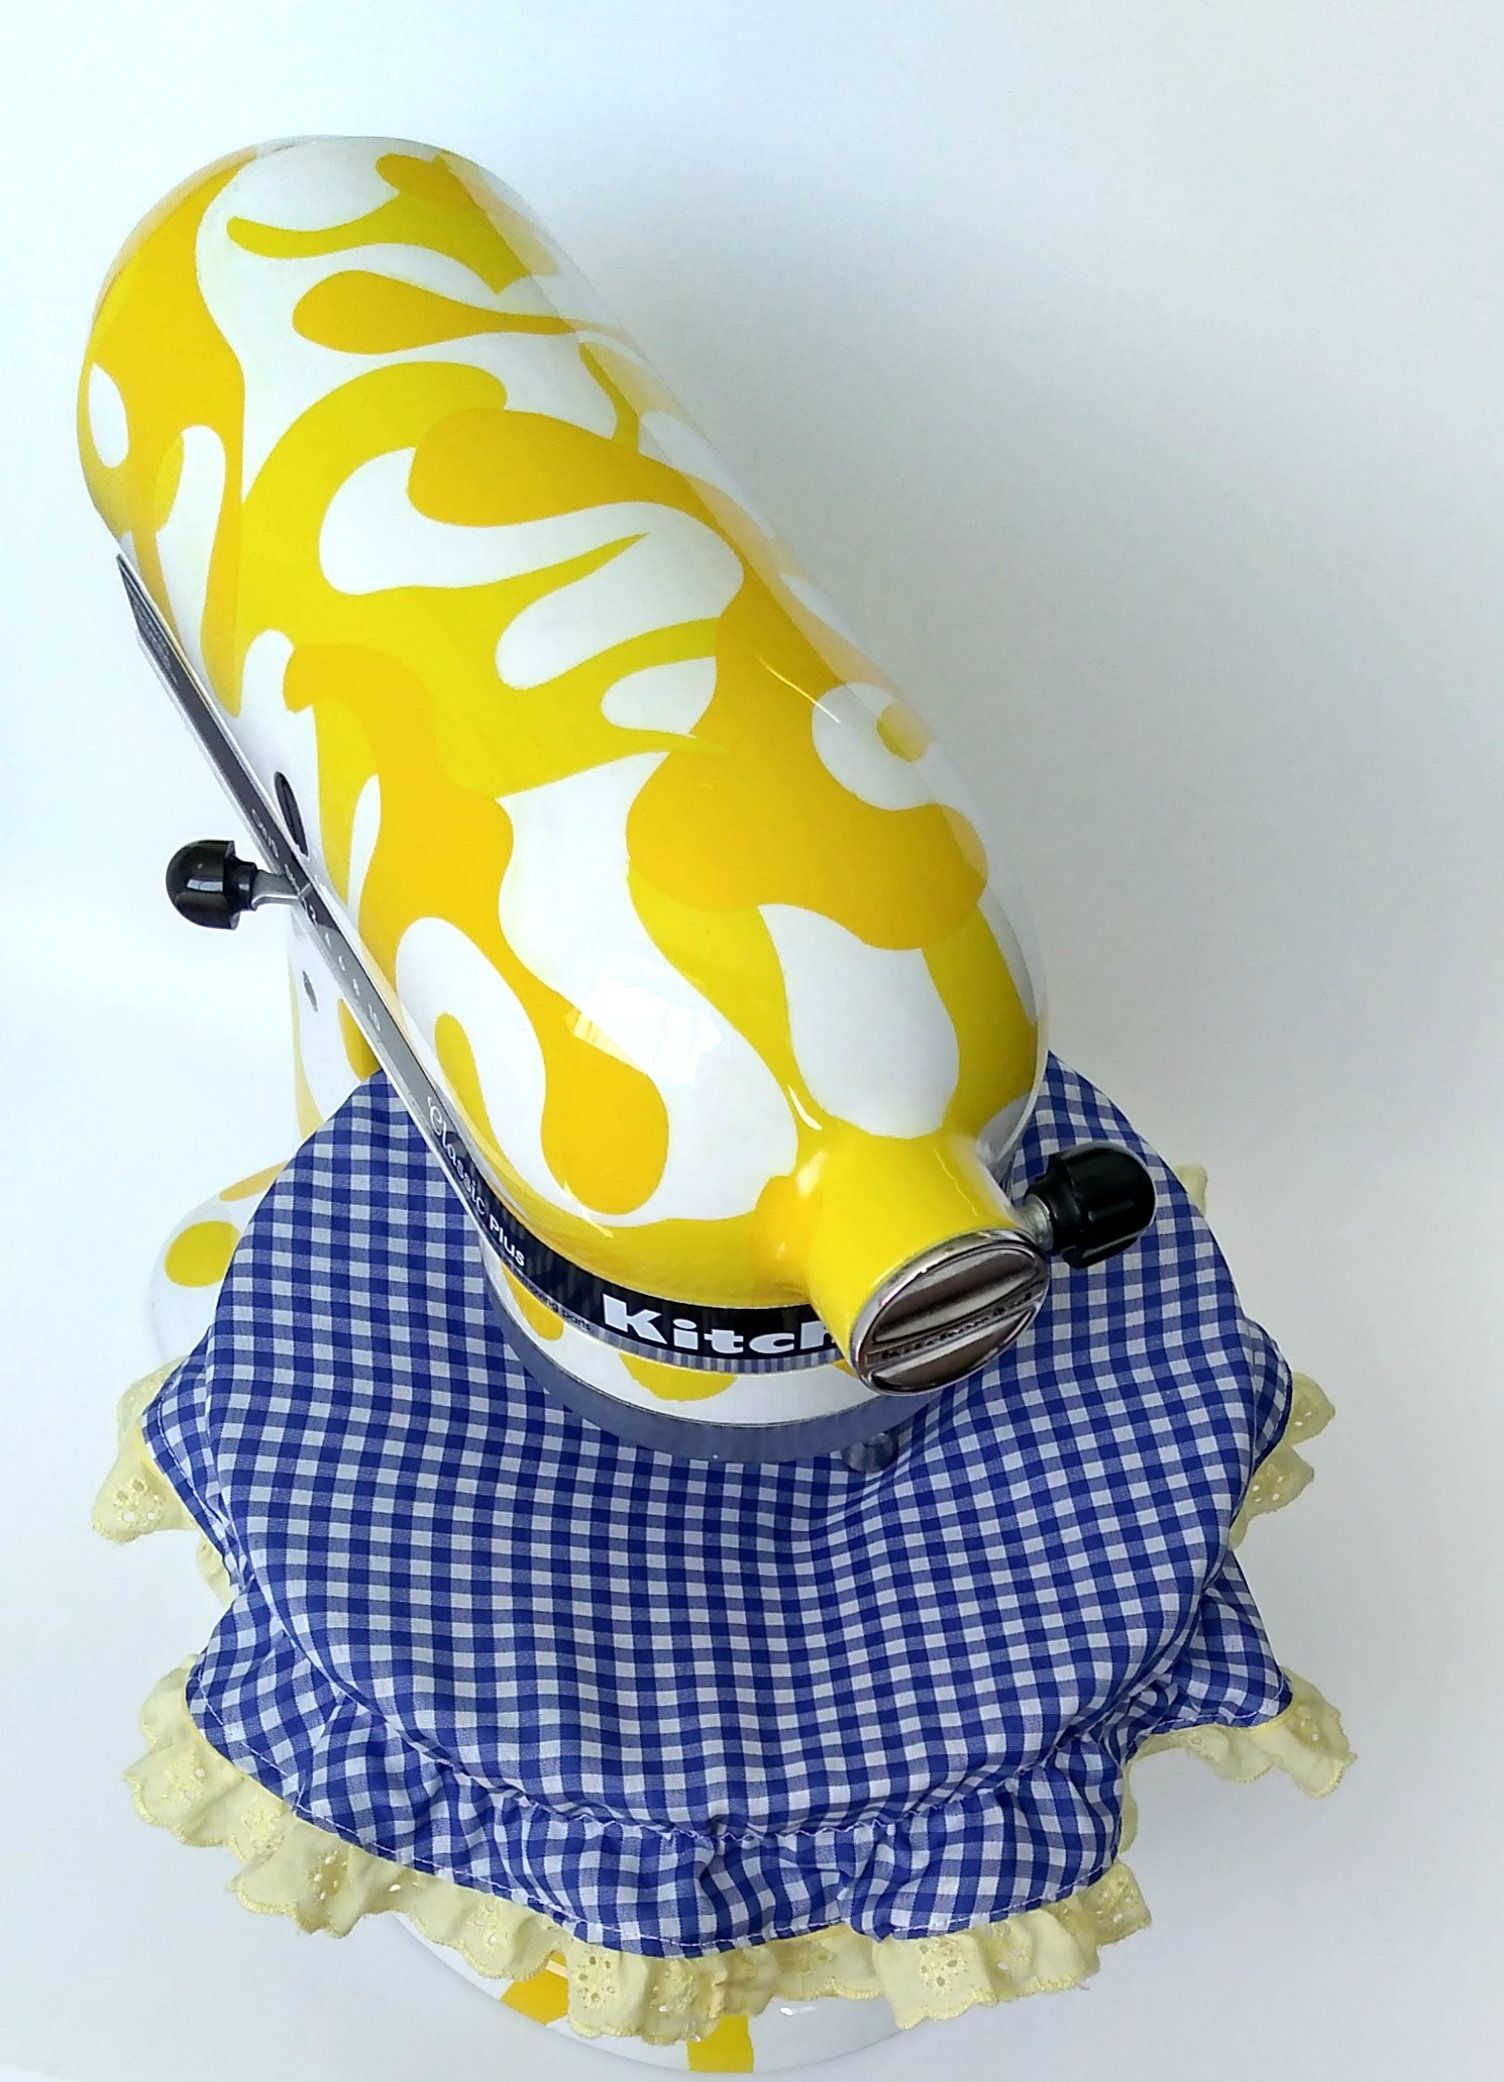 Kitchenaid mixer bowl cover from catysclocksandthings on